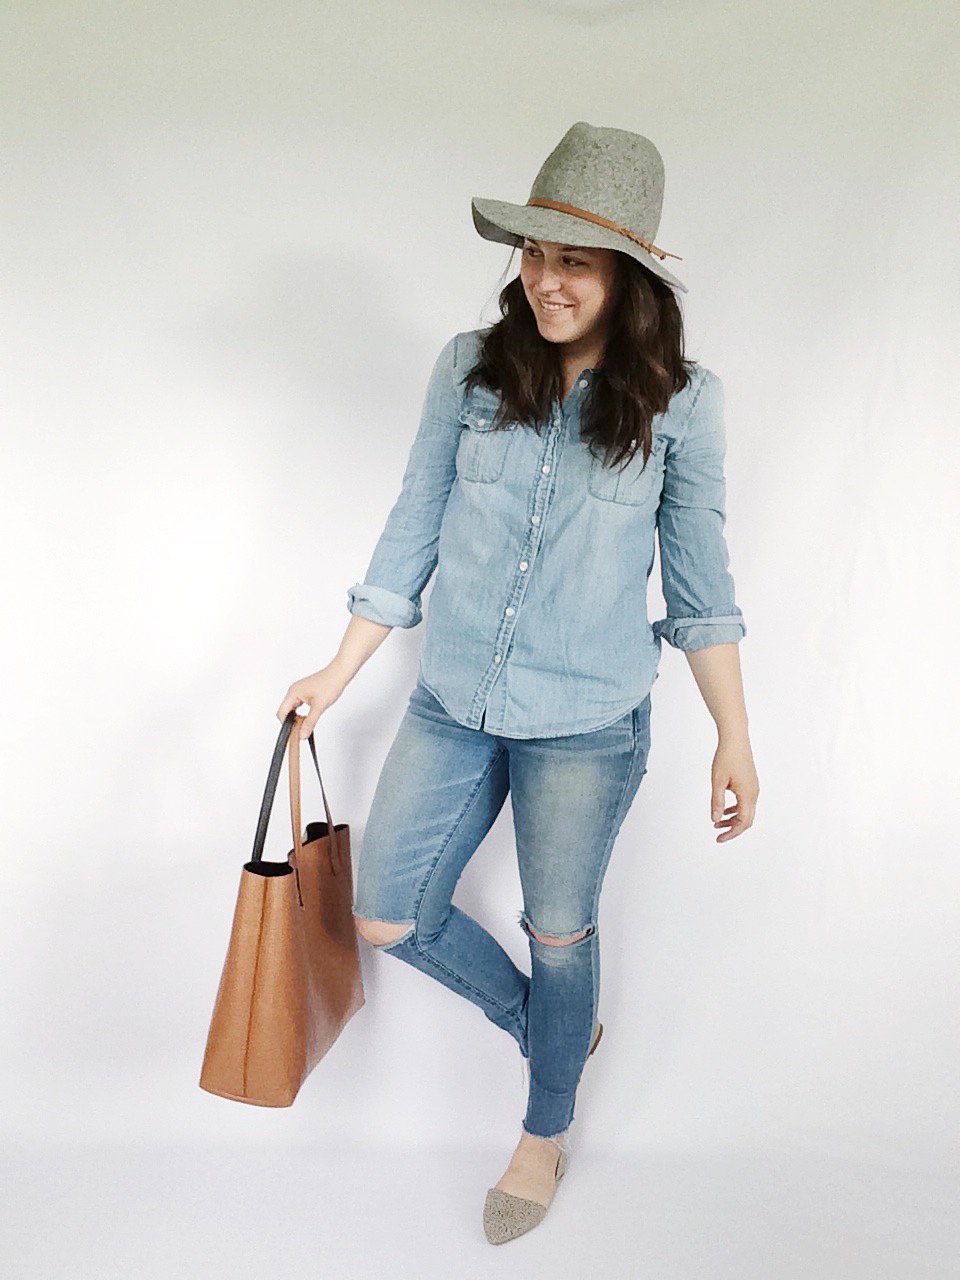 Use 10 pieces to create 10 unique everyday looks via thelovelylauralife.com | chambray, ripped denim, patterned flats + panama hat